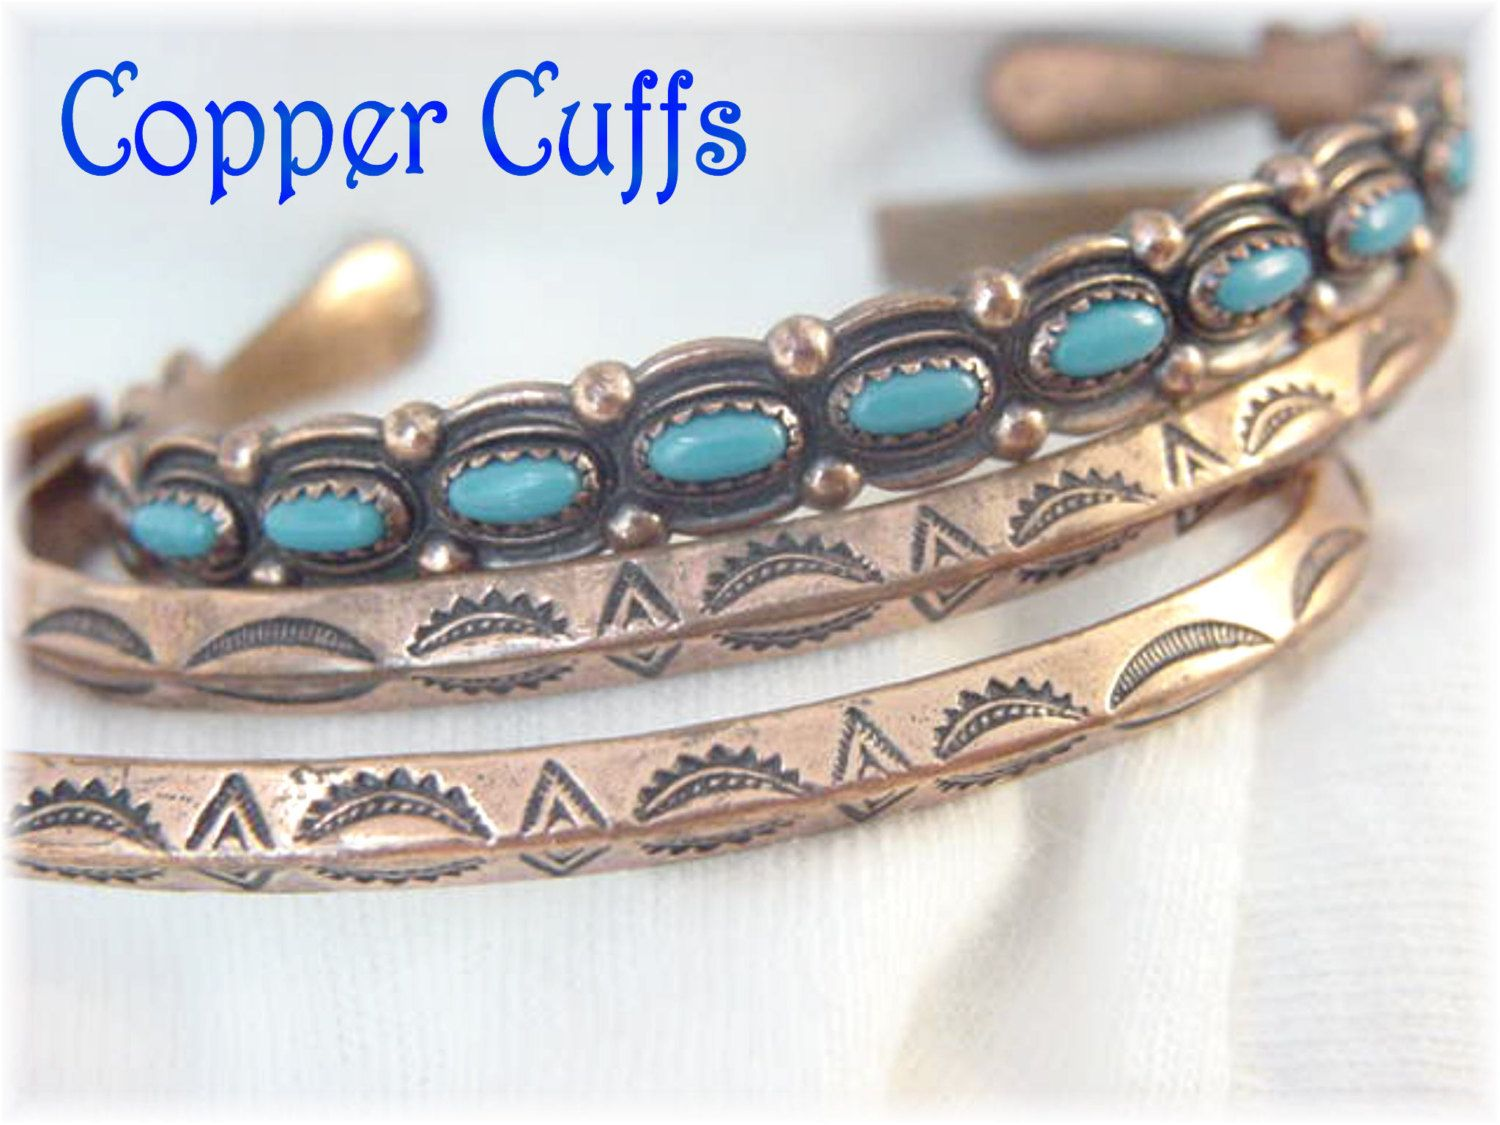 Bell Copper Cuff Native American Bracelet Set - Sleeping Beauty Turquoise - Western Navajo Concho Designs - Arizona Estate FREE SHIPPING